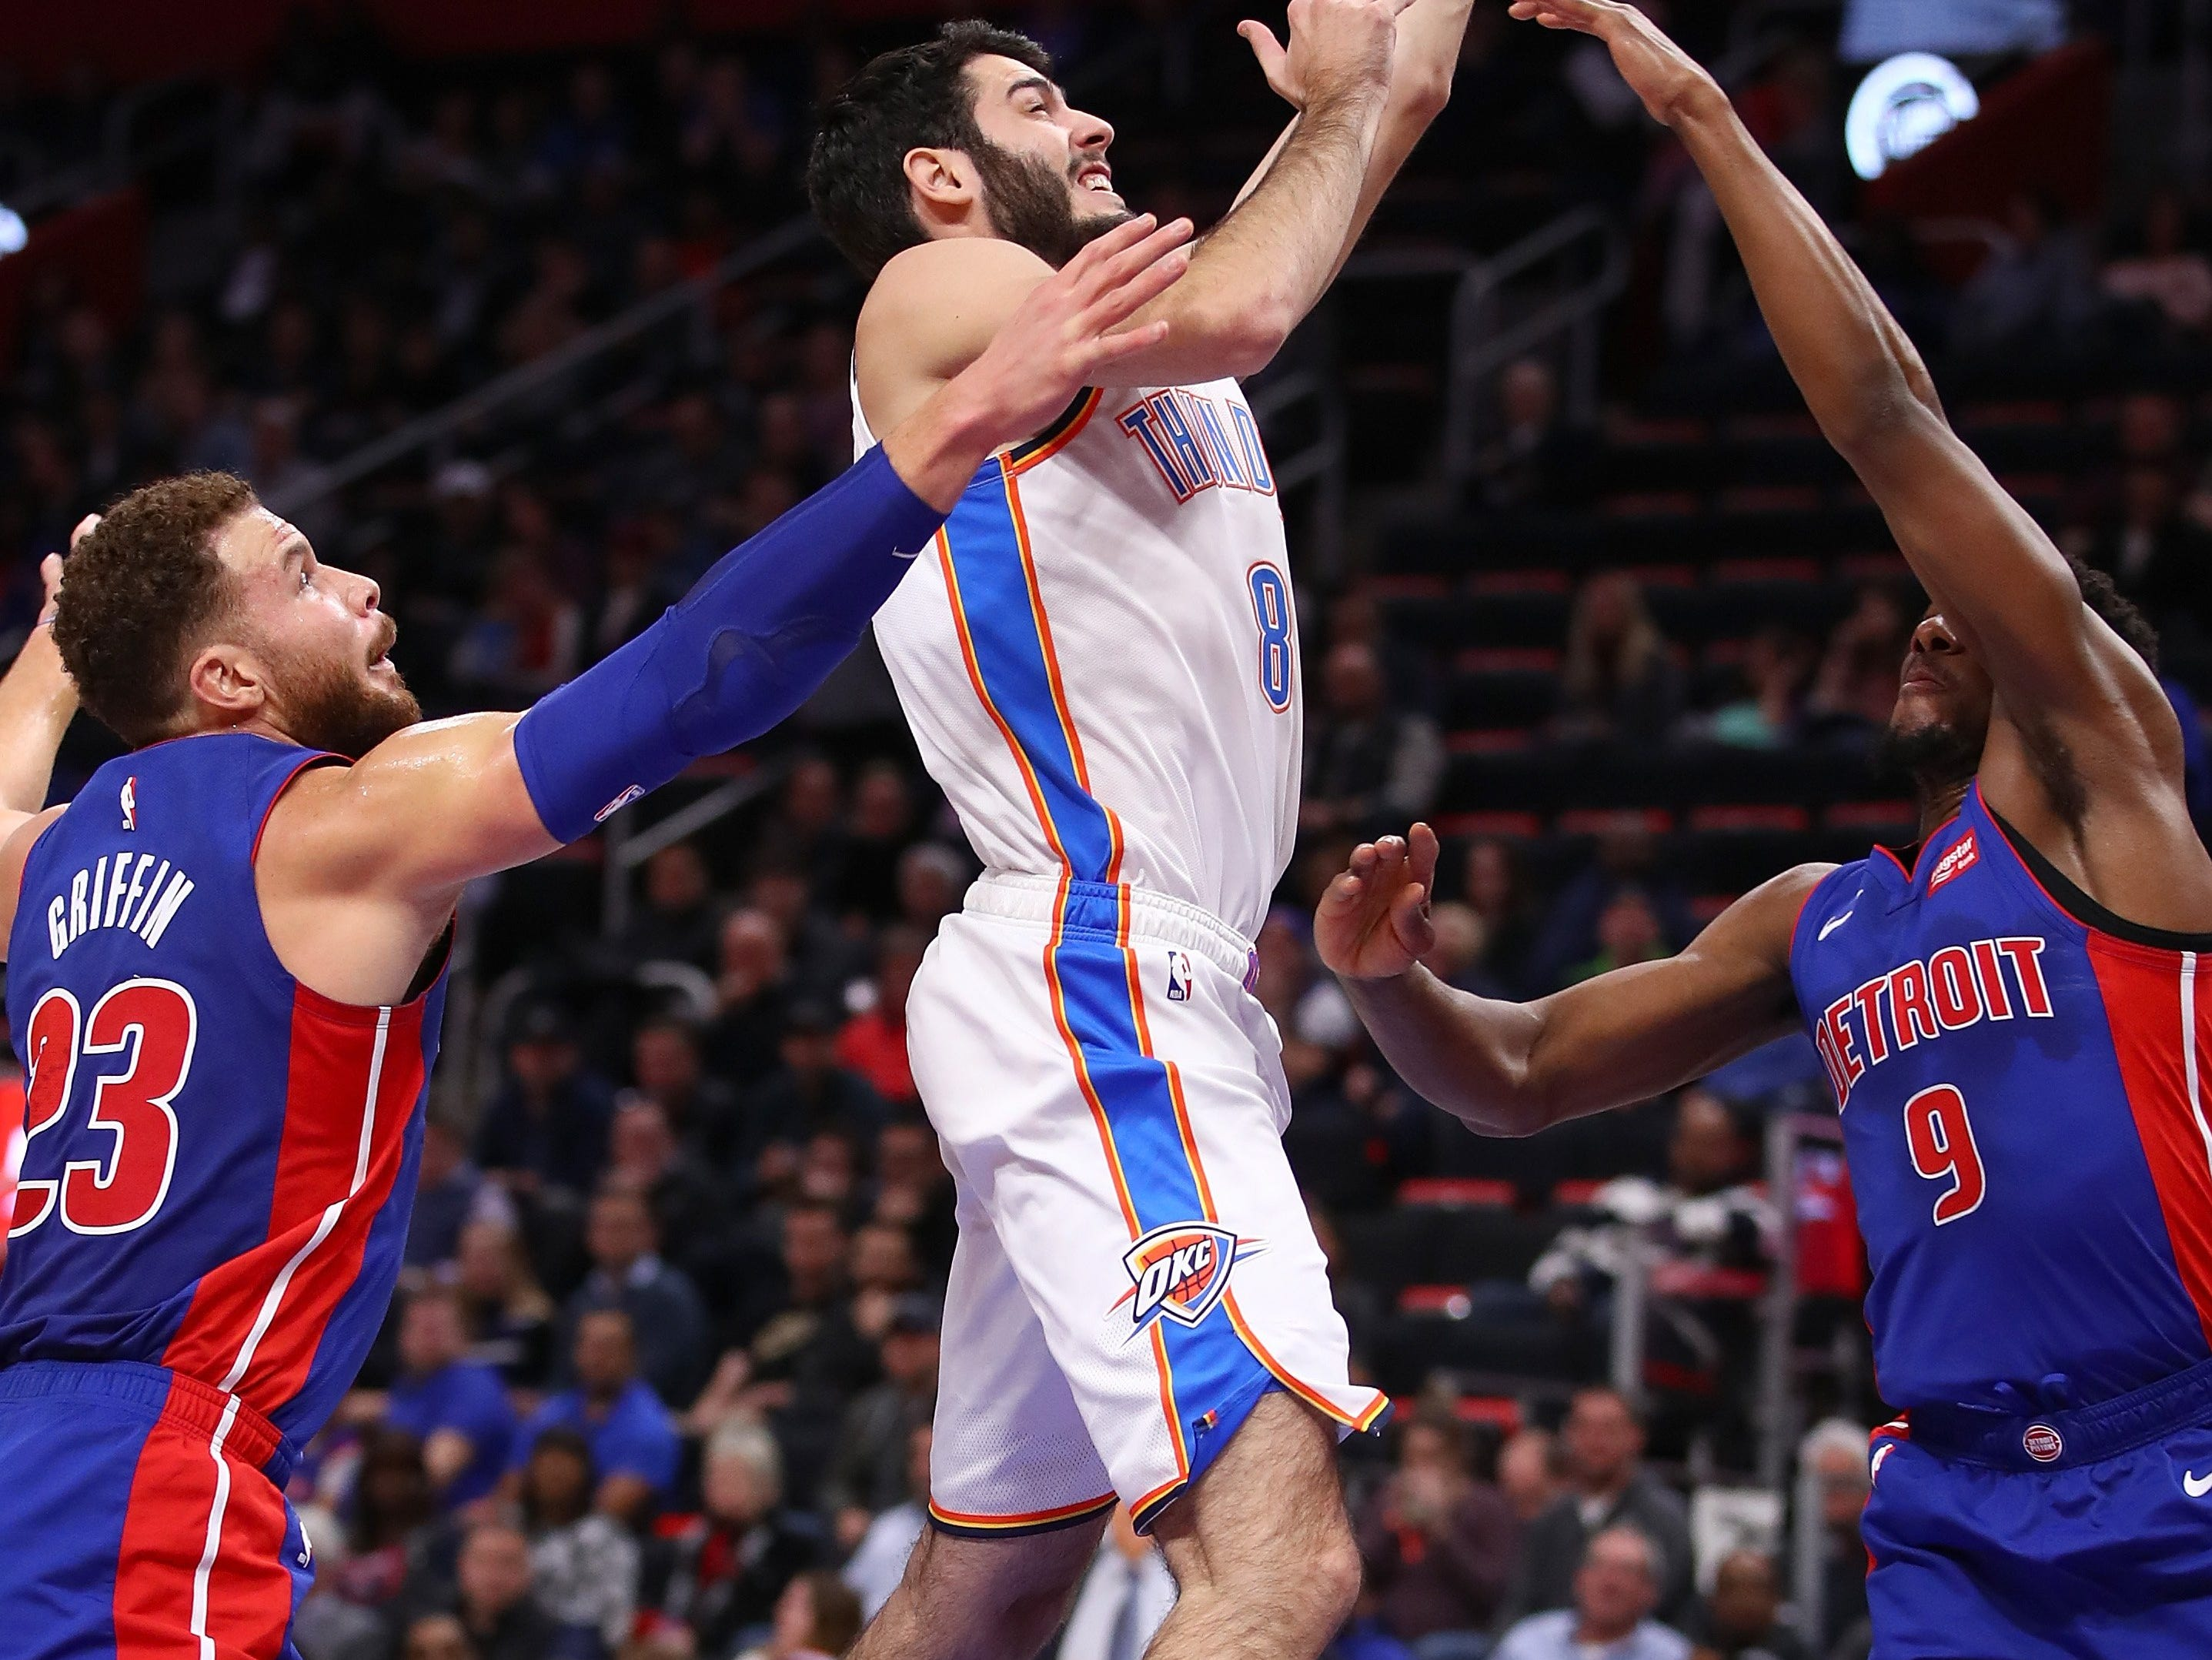 Alex Abrines #8 of the Oklahoma City Thunder tries to get a shot off between Langston Galloway #9 and Blake Griffin #23 of the Detroit Pistons during the first half at Little Caesars Arena on December 03, 2018 in Detroit, Michigan.